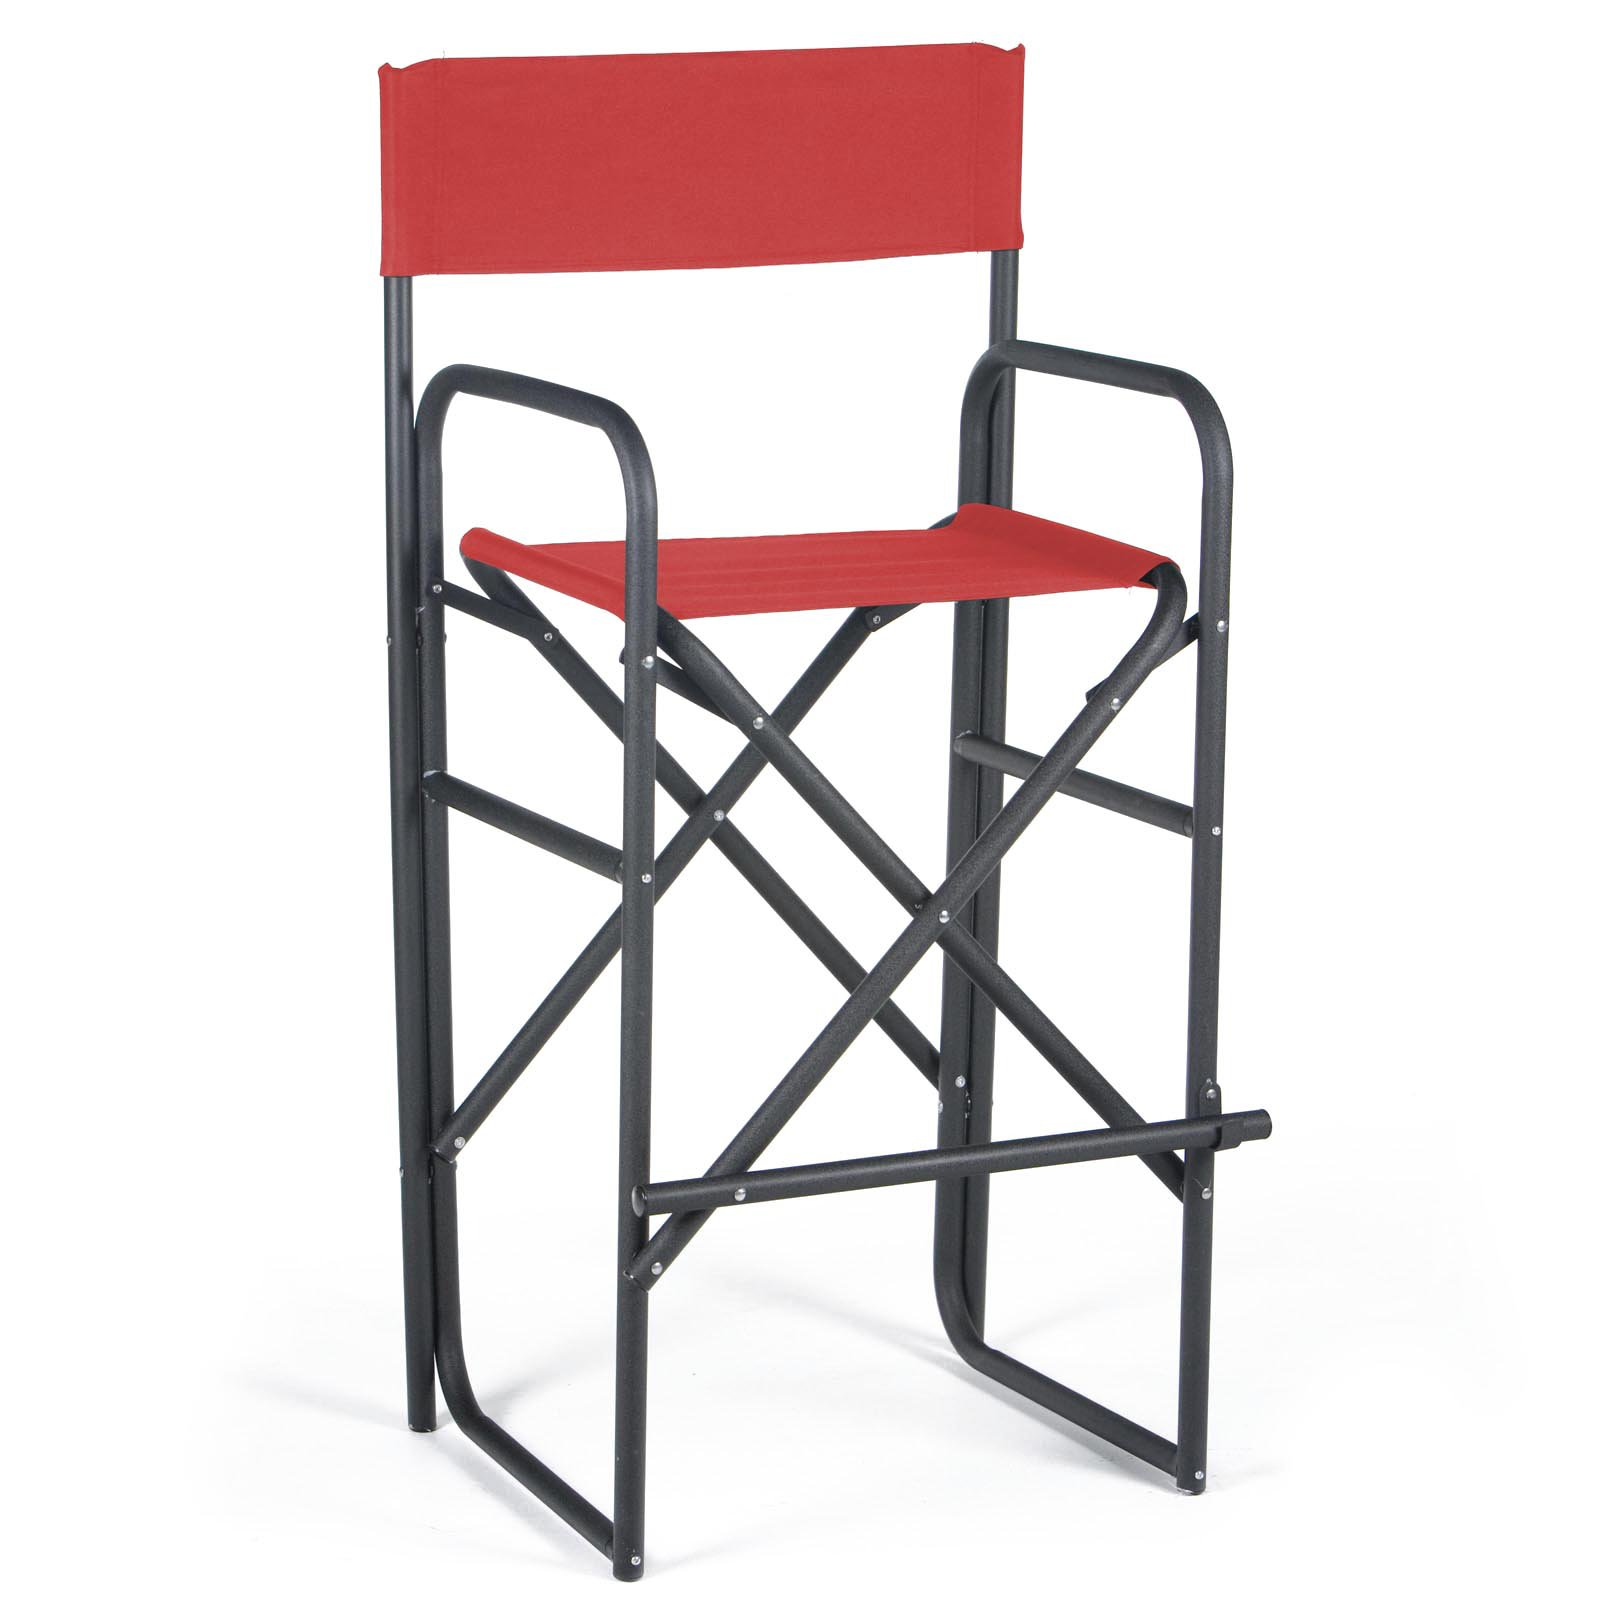 Captivating 30.5 Inch Black Frame Bar Height Directors Chair